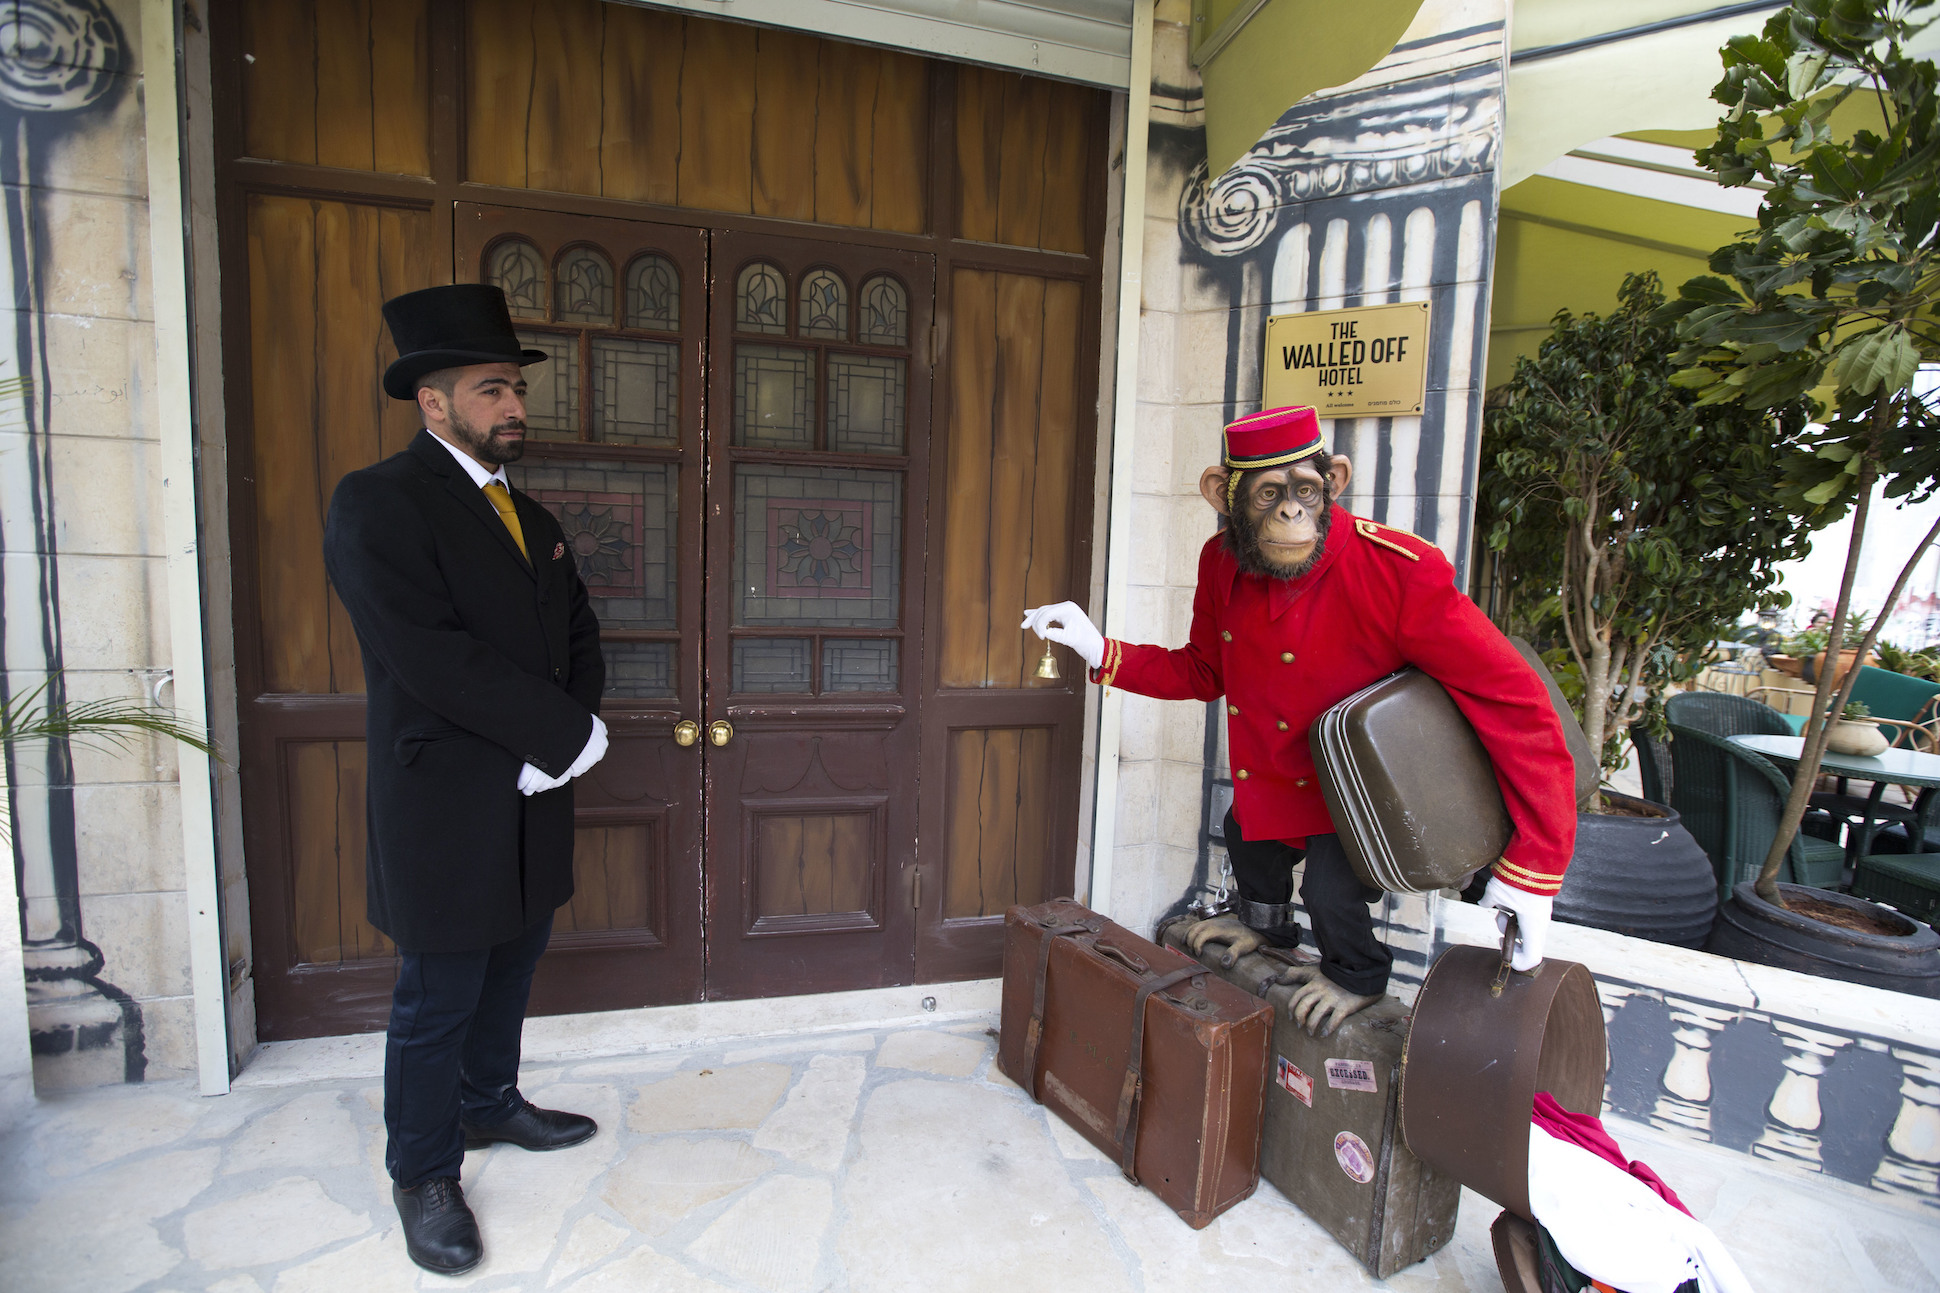 Banksy apre 'The Walled Off Hotel' a Betlemme | Collater.al